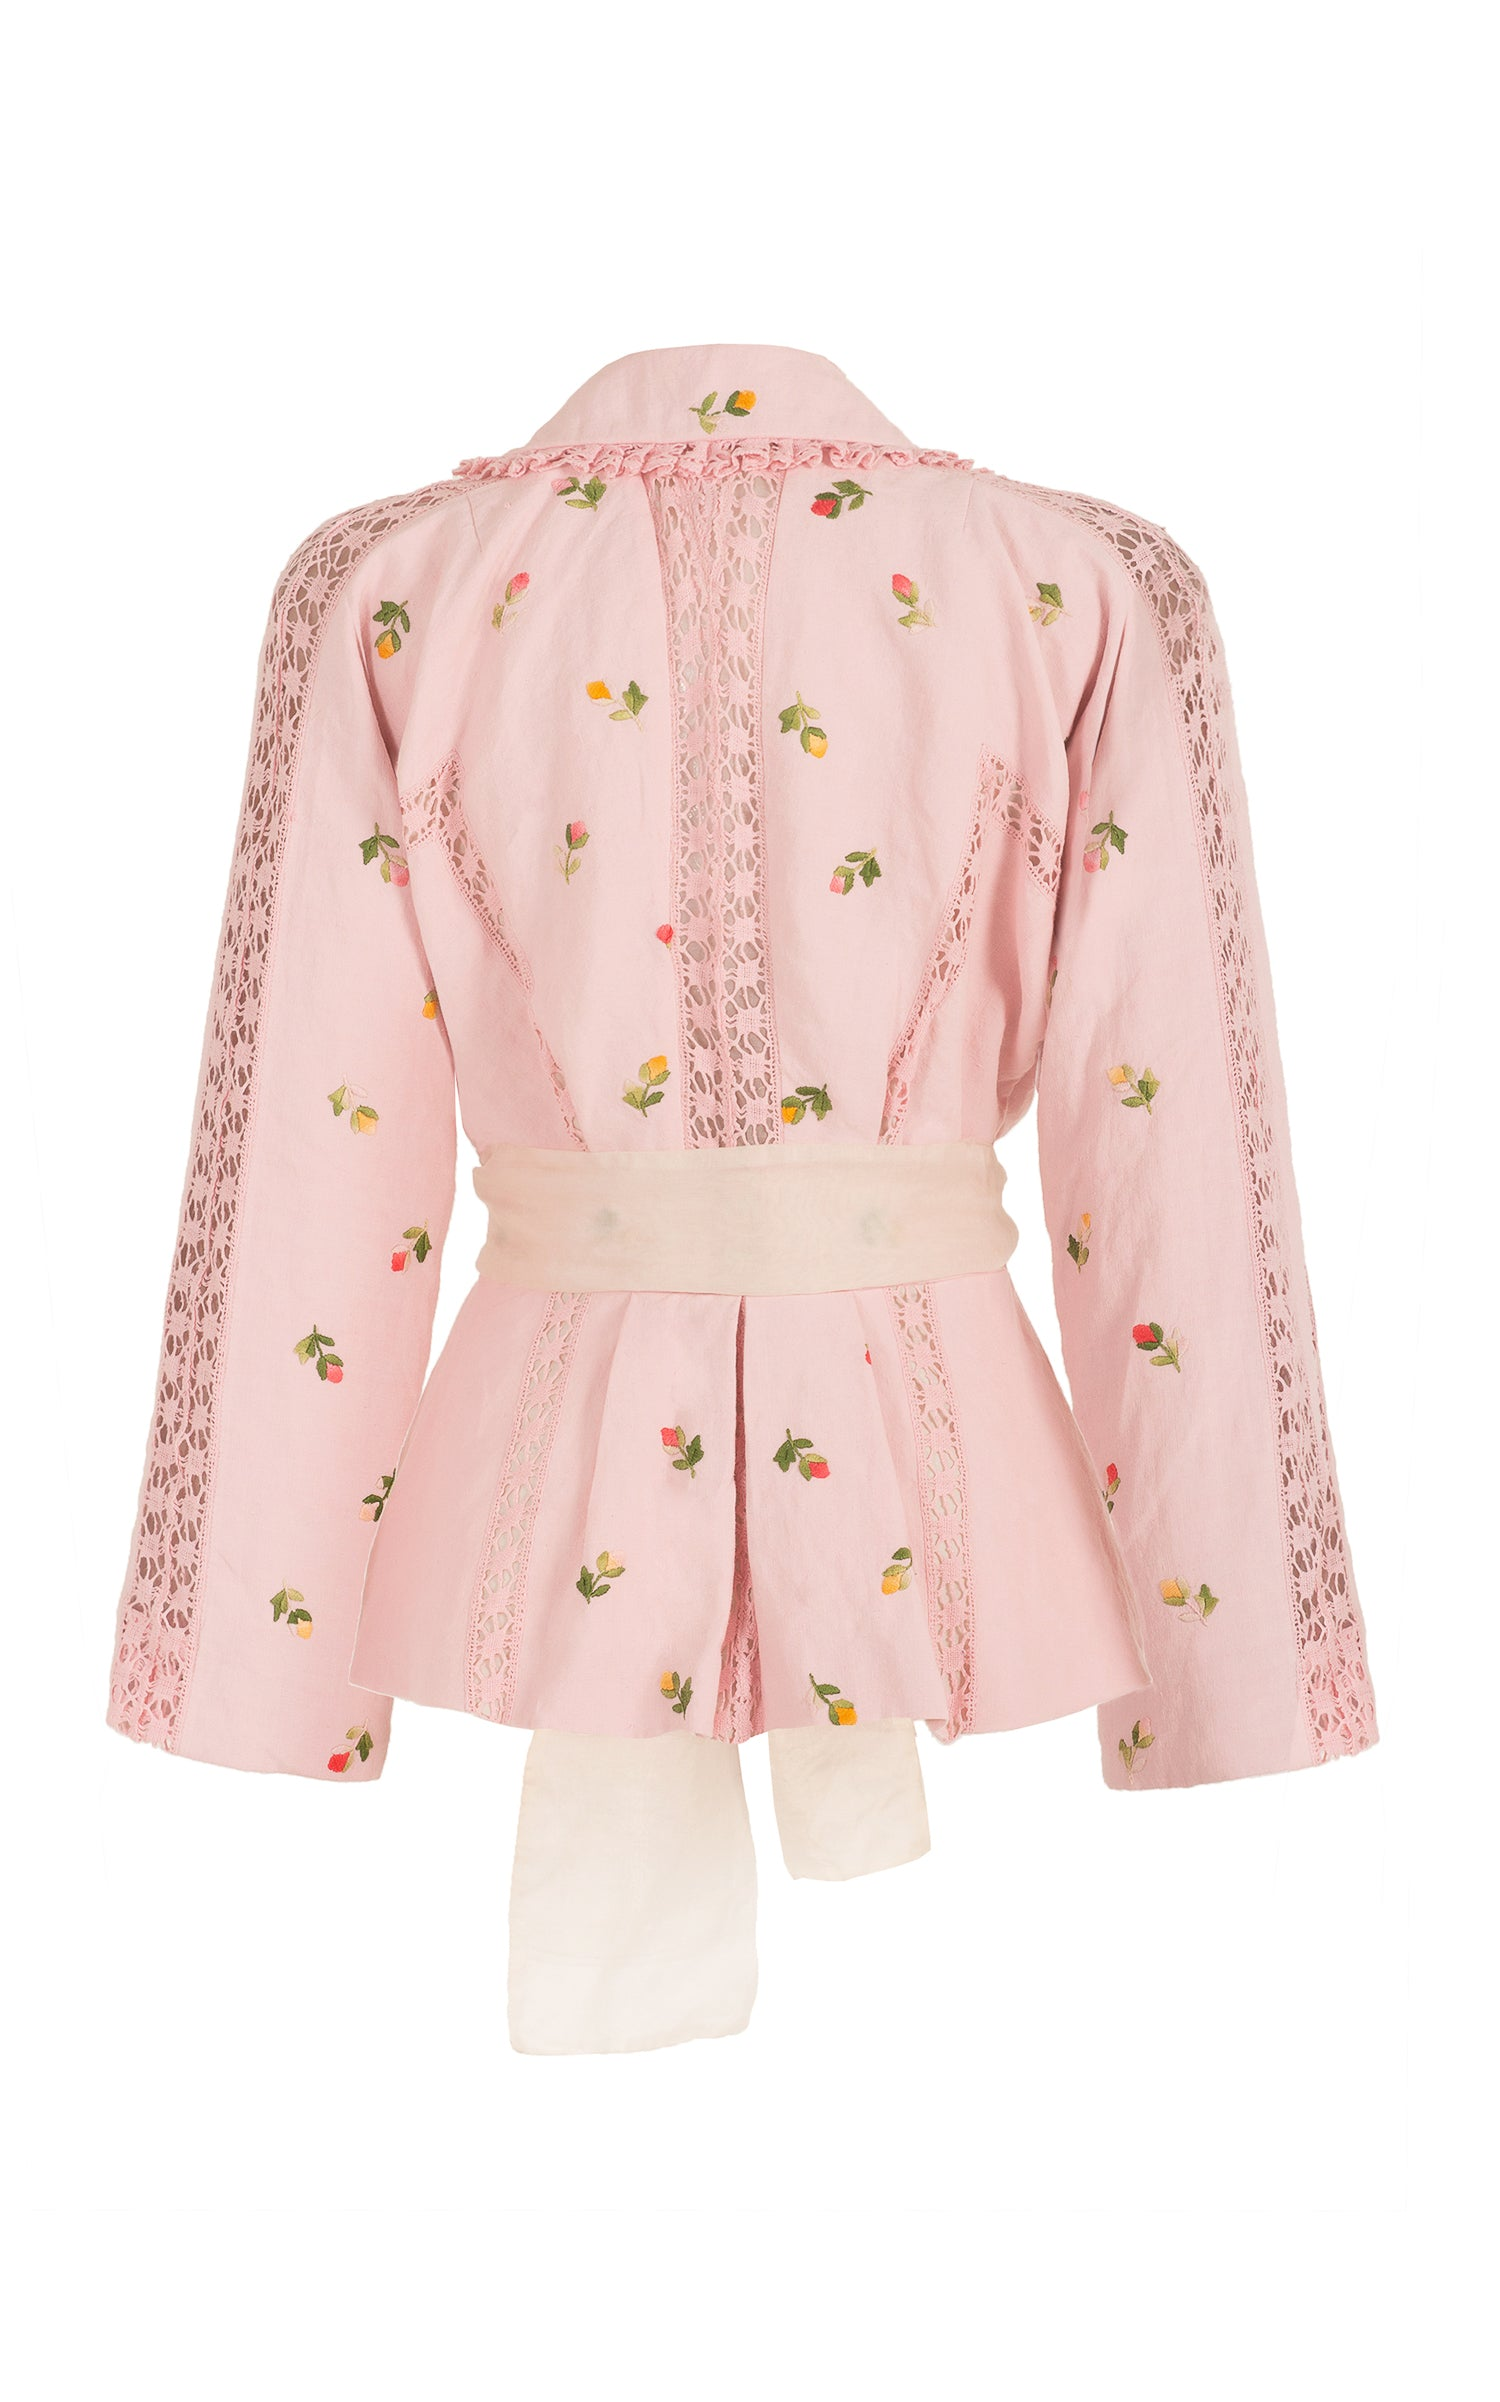 let it rain down on me pink embroidery jacket